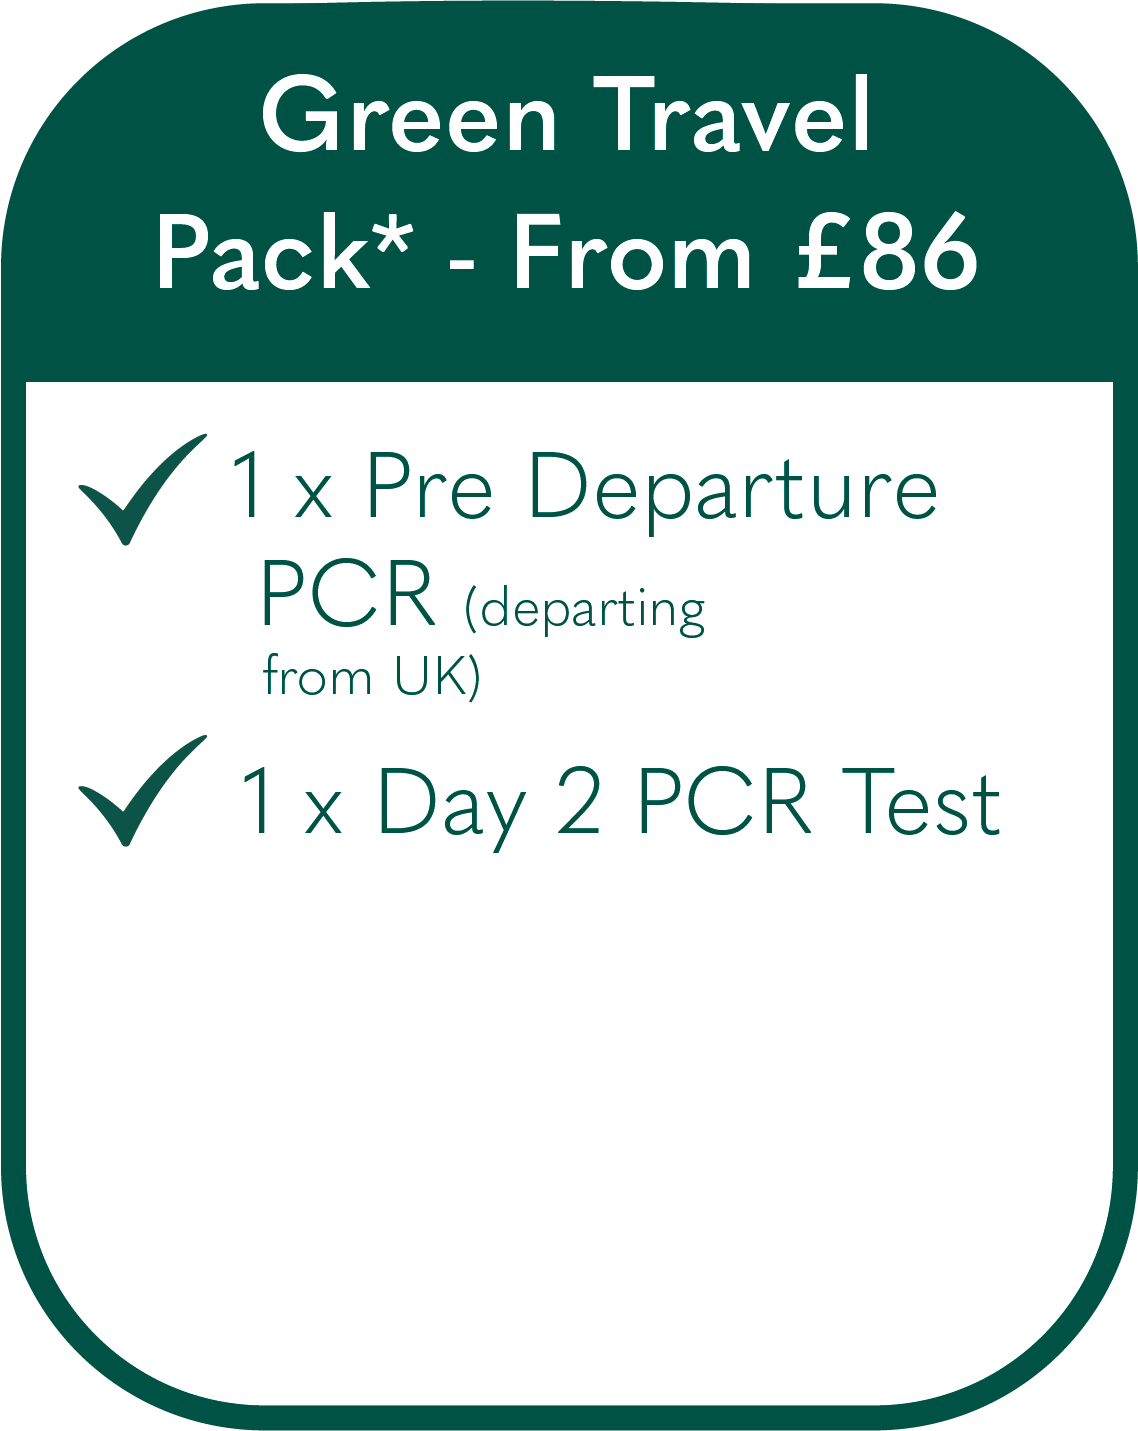 Covid-19 Test to Return Travel Pack